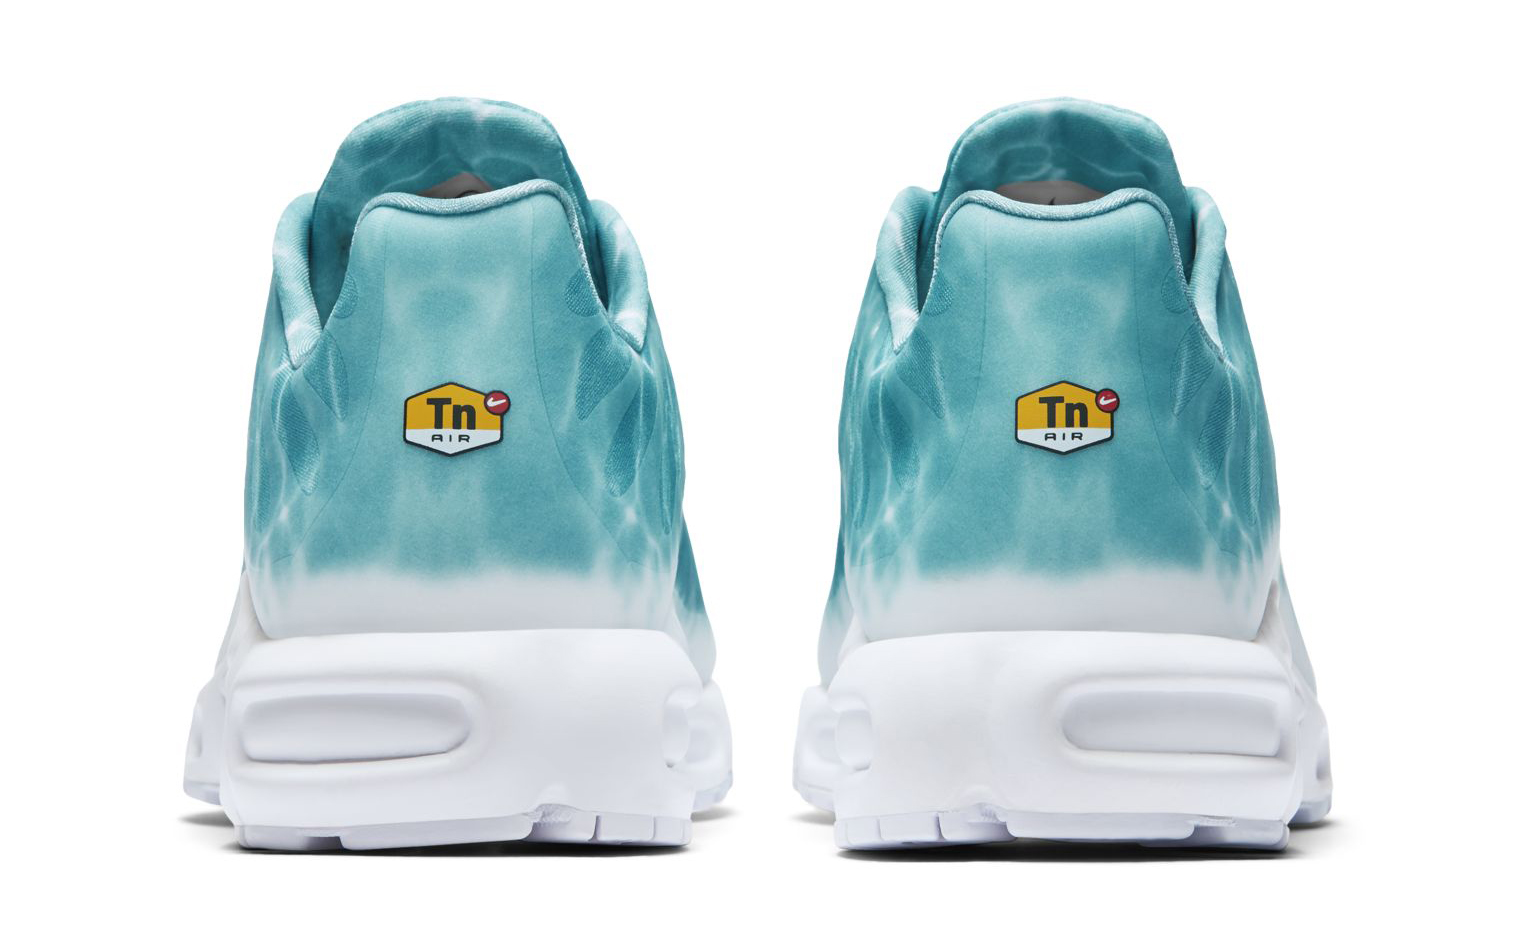 271383fbda2 Image via Nike US11 · Nike Air Max Plus Water Heel